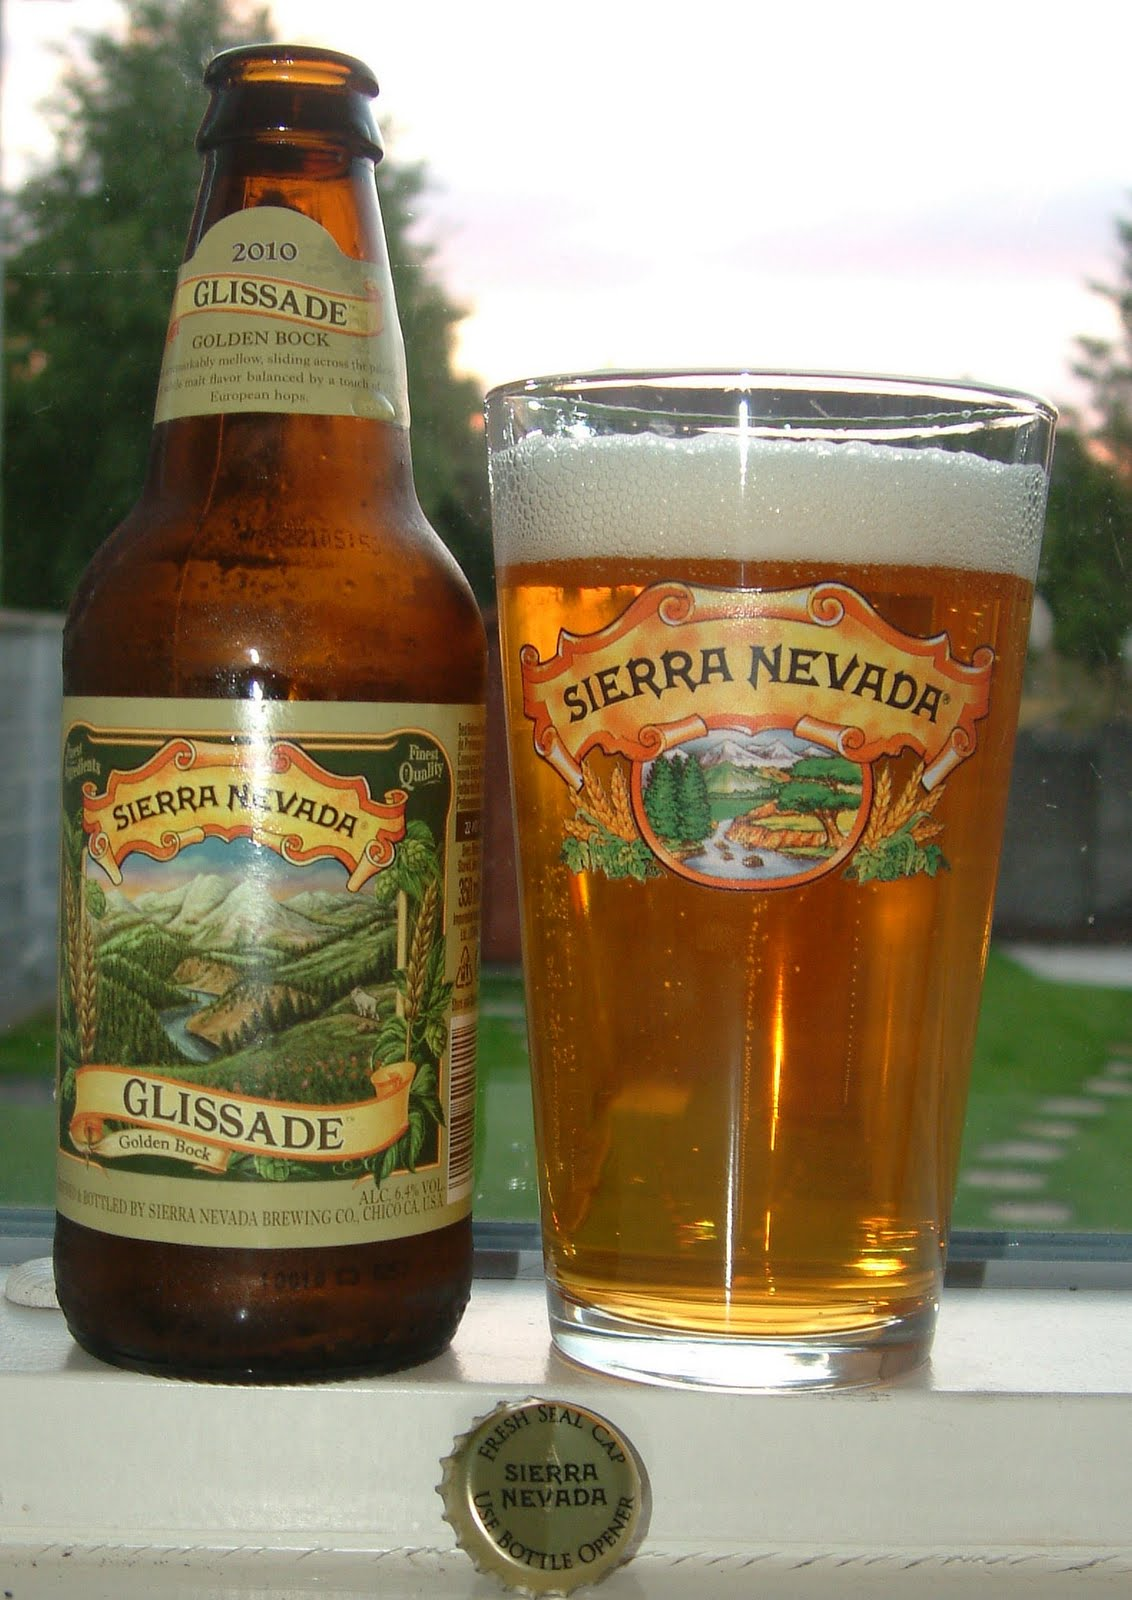 4a2fc4d27e New from California's Sierra Nevada is Glissade, a golden bock which  follows their Kellerweis in being an attempt at recreating a German style,  ...